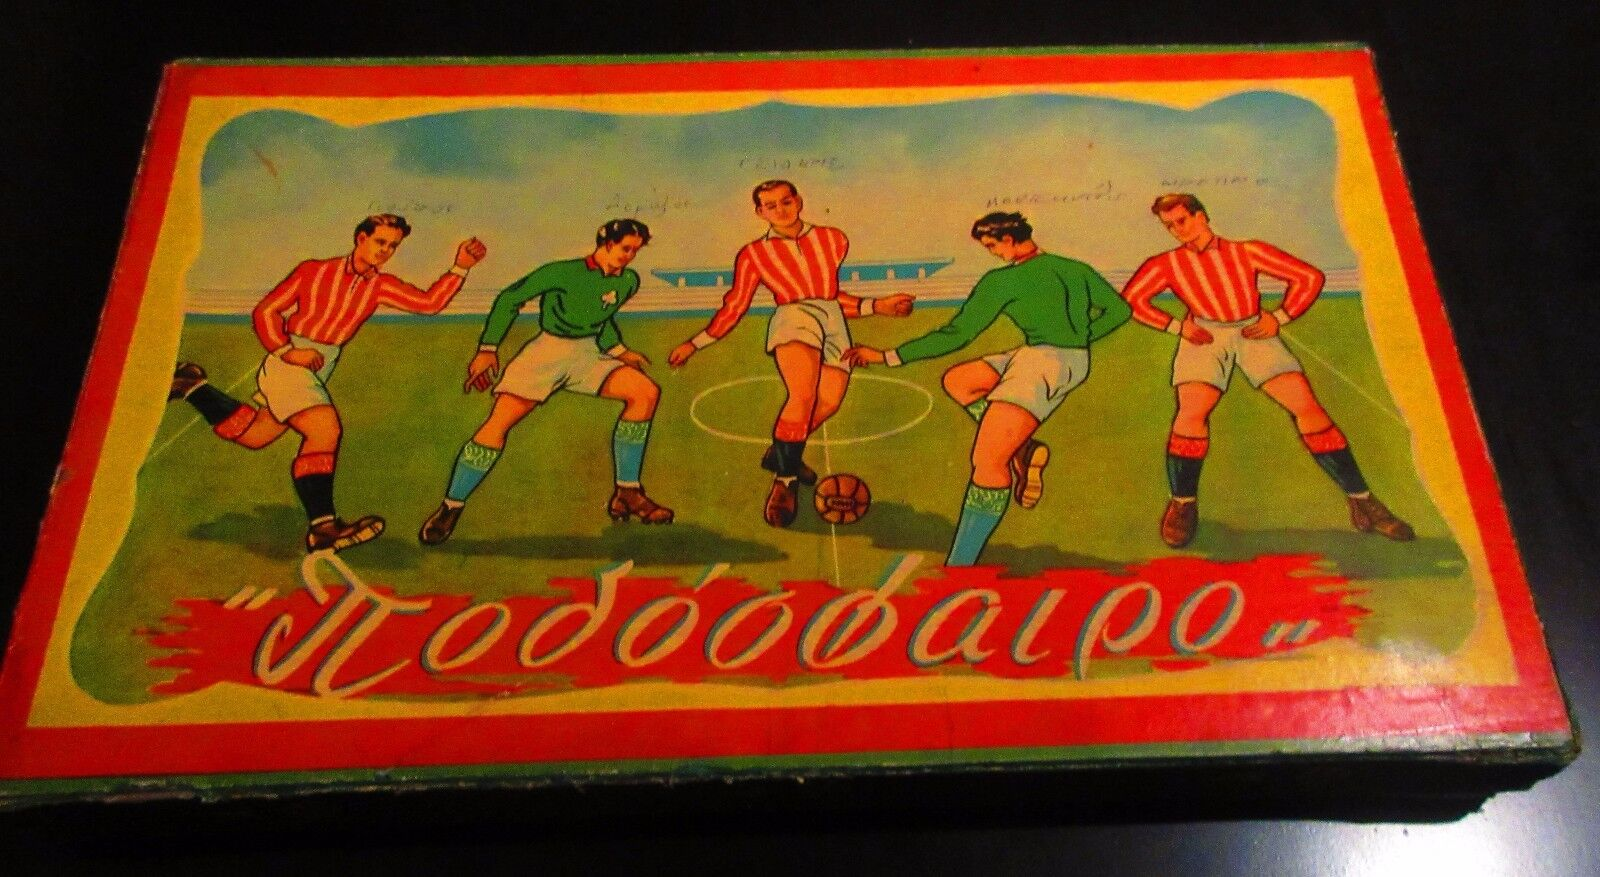 UNIQUE VINTAGE GREEK LITHO HARDBOARD FOOTBALL GAME PAO - OLYMPIAK0S BY EPA 60s